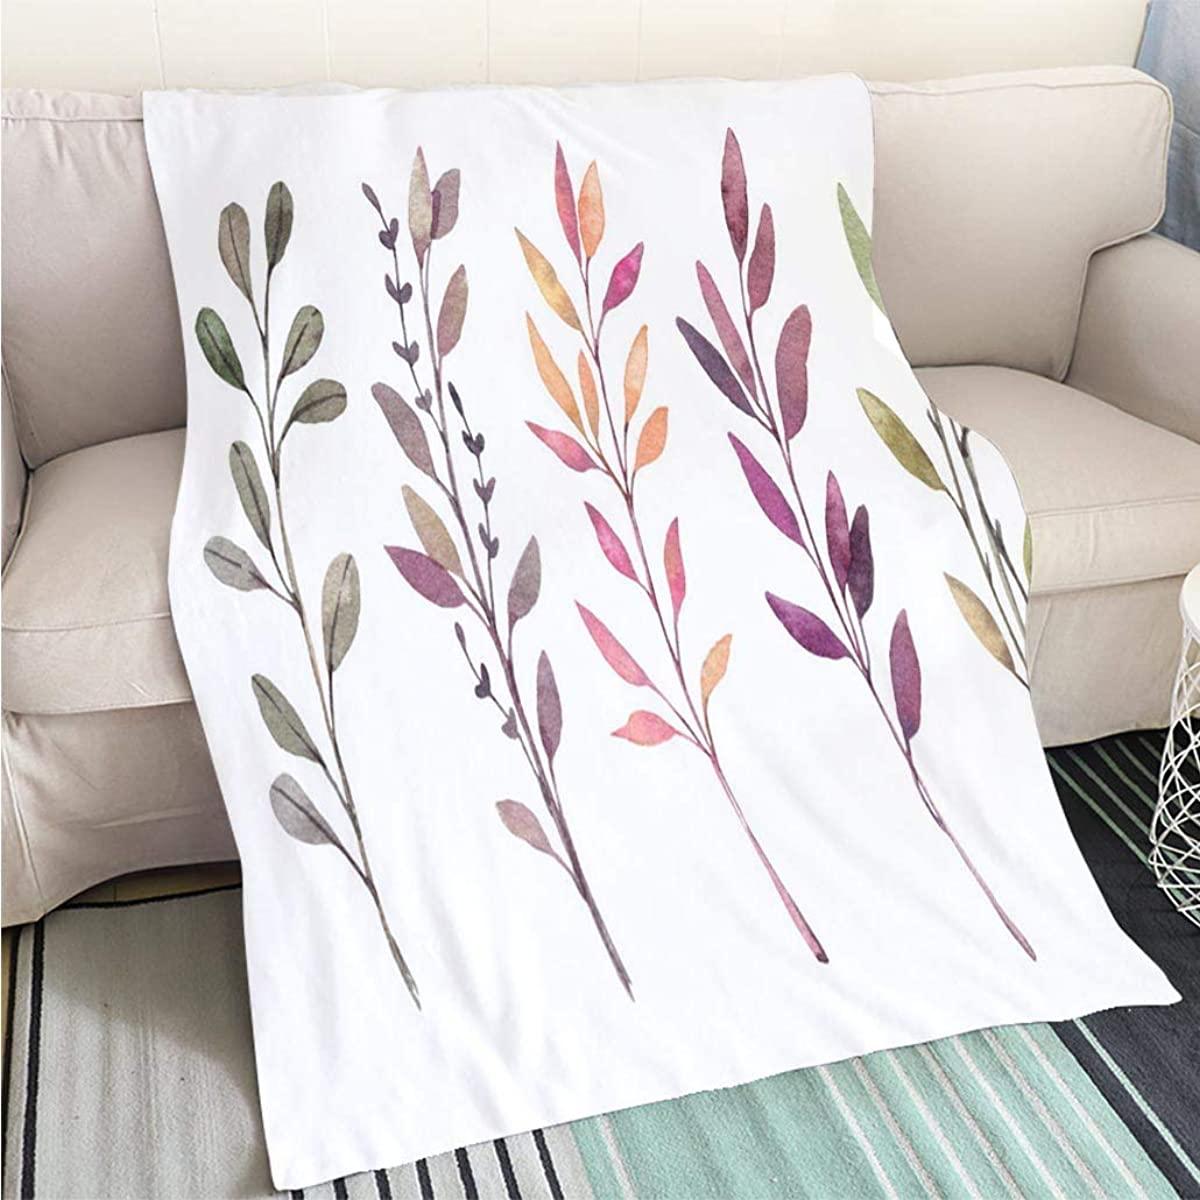 Customized Comfortable 100% Soft Premium Blanket Hand drawn watercolor illustrations Autumn Botanical clipart Set of fall leaves herbs and branches Floral Sofa Bed or Bed 3D Printing Cool quilt